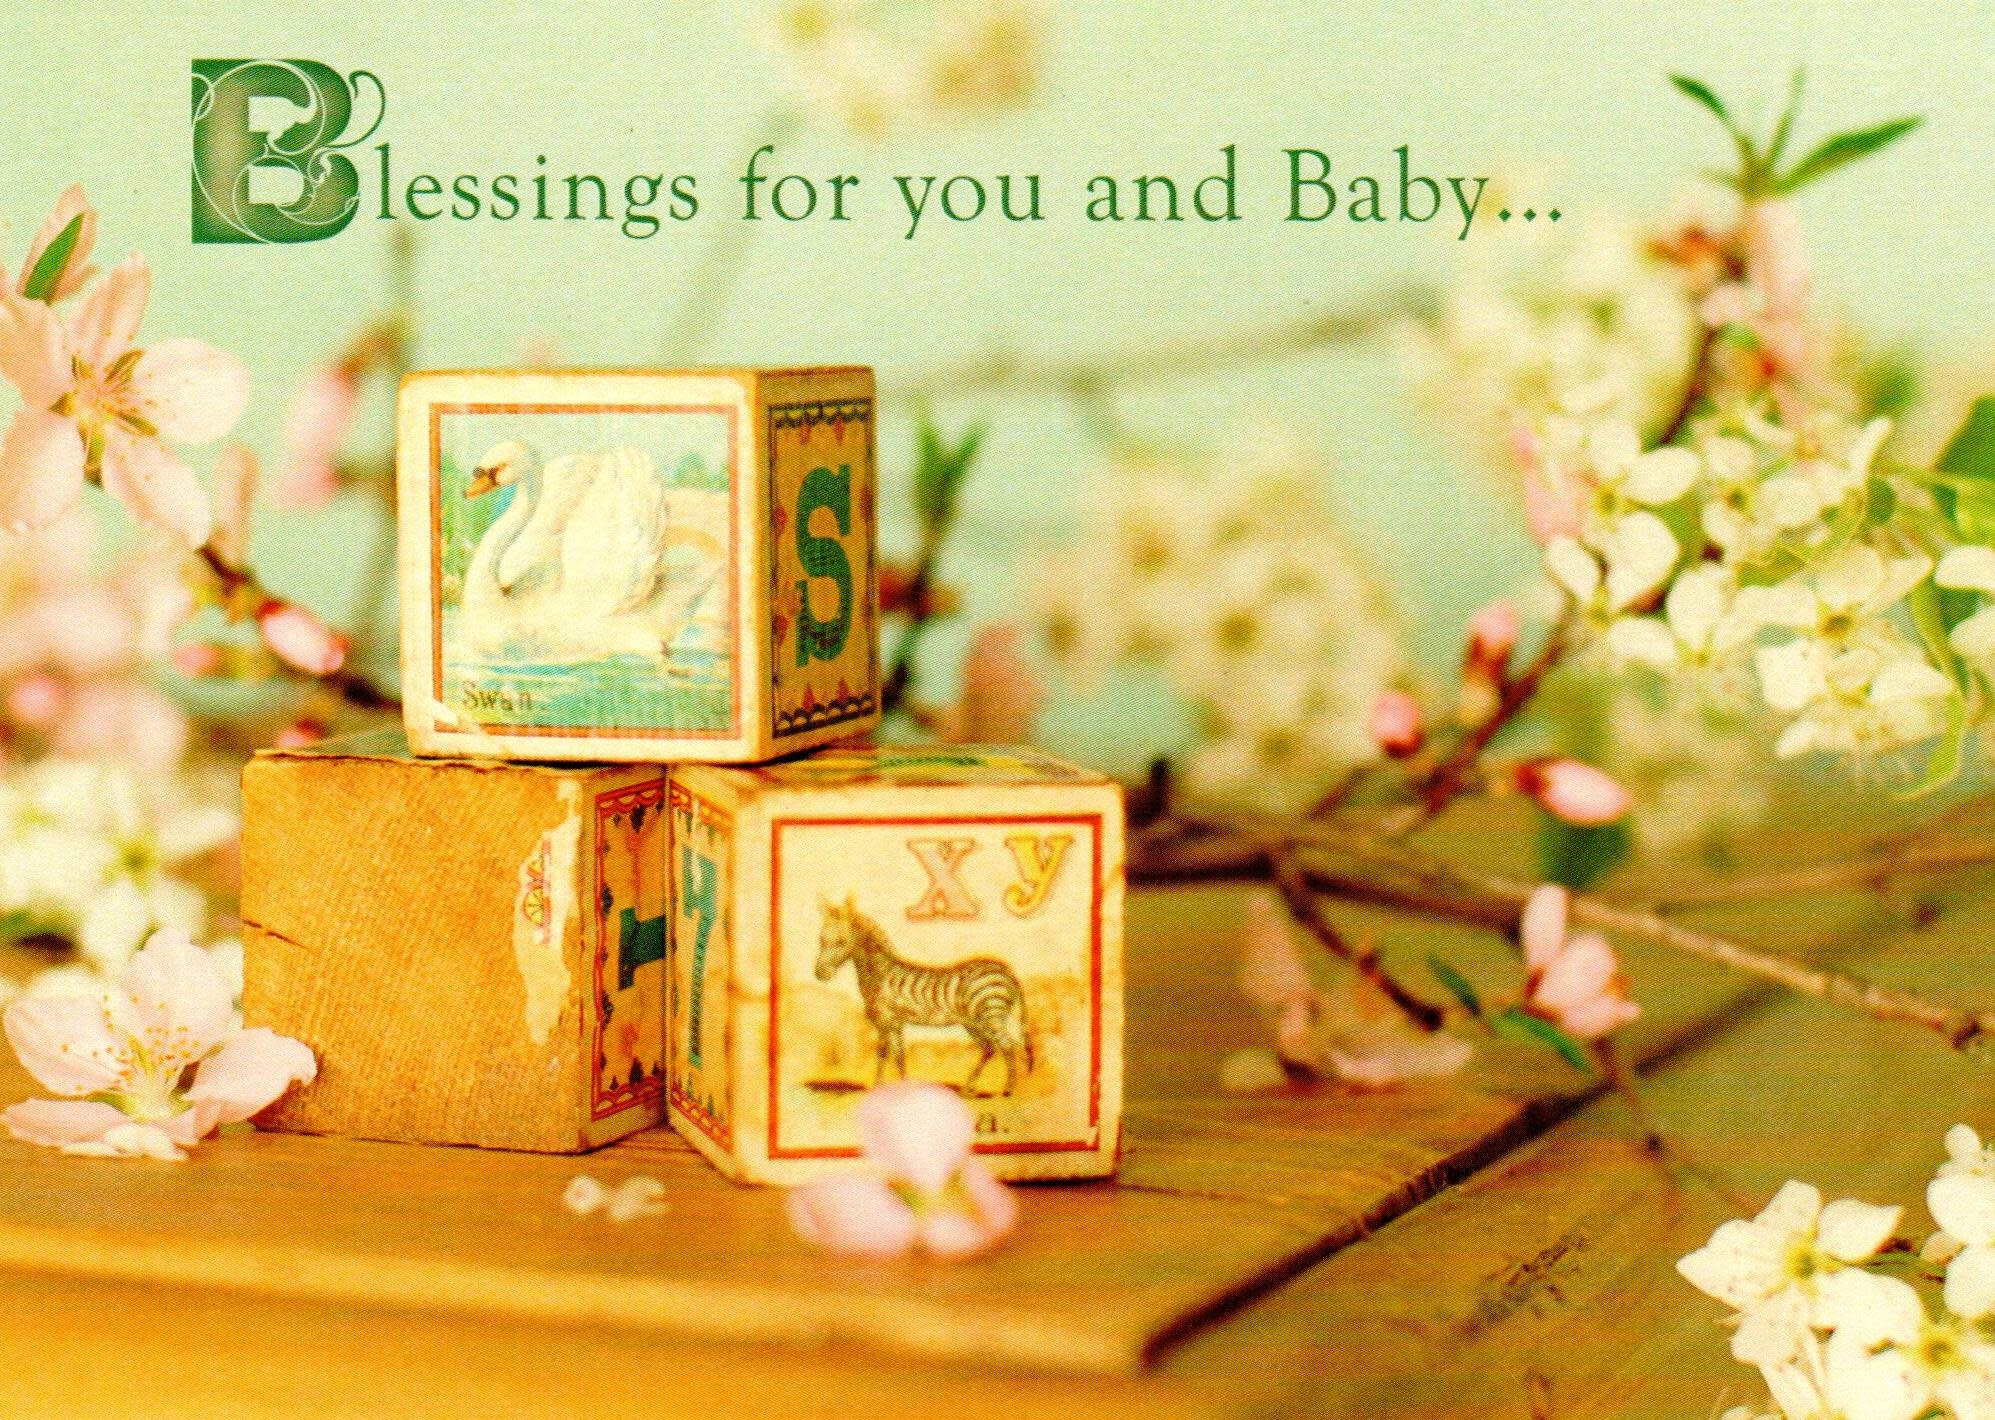 Blessings for You and Baby... Blocks and Branch